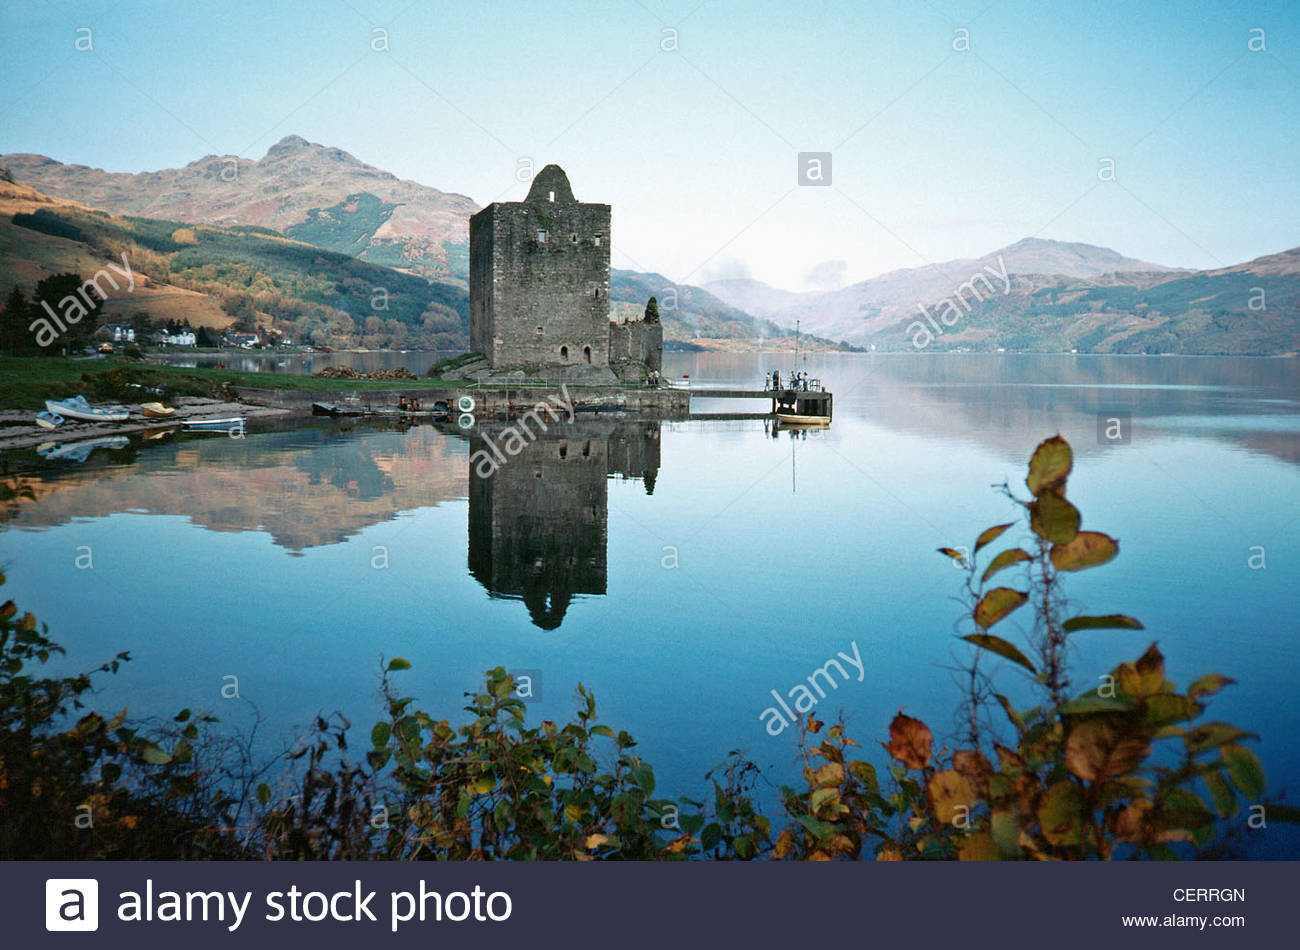 A view toward Carrick Castle on Loch Goil. - Stock Image